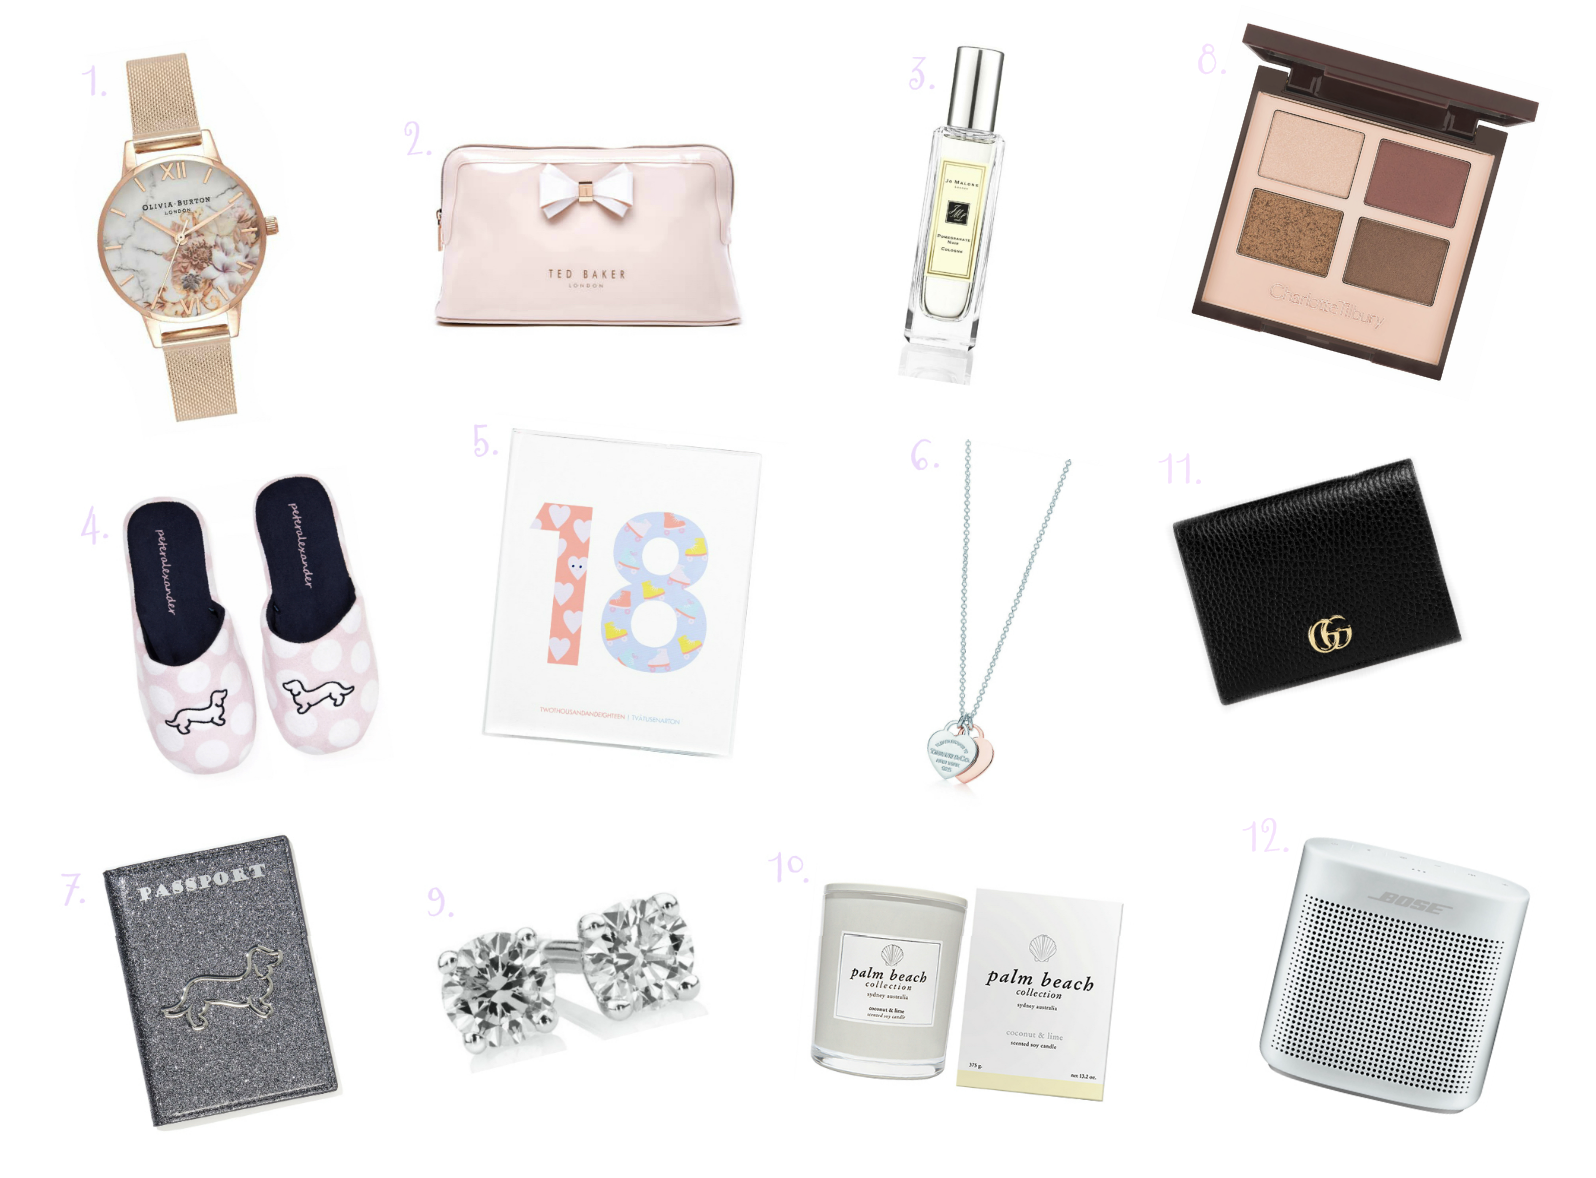 18 Christmas Gifts For Her - Luxury/Affordable Edition | Taylor Talks